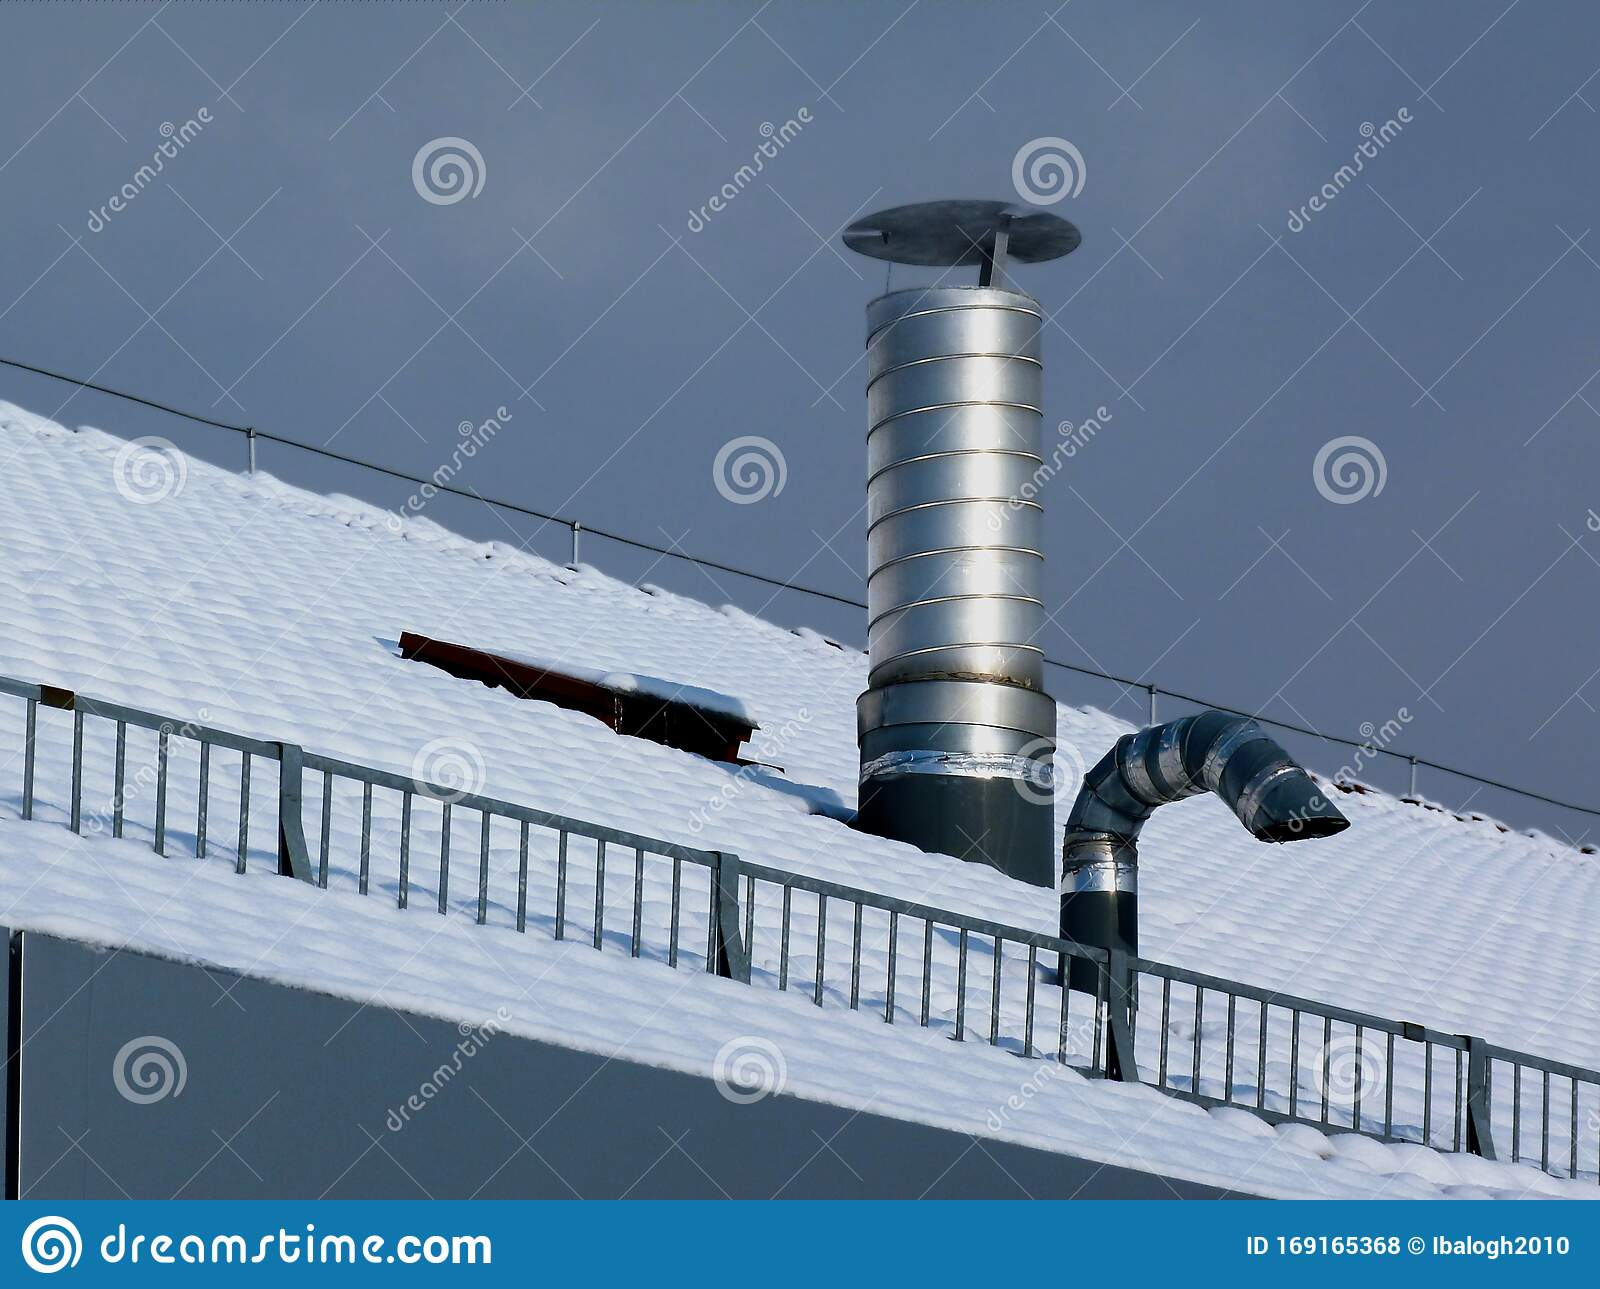 https www dreamstime com shiny aluminum roof stack vent sow covered winter roof shiny spiraled aluminum roof stack pipe cover lid exhaust image169165368